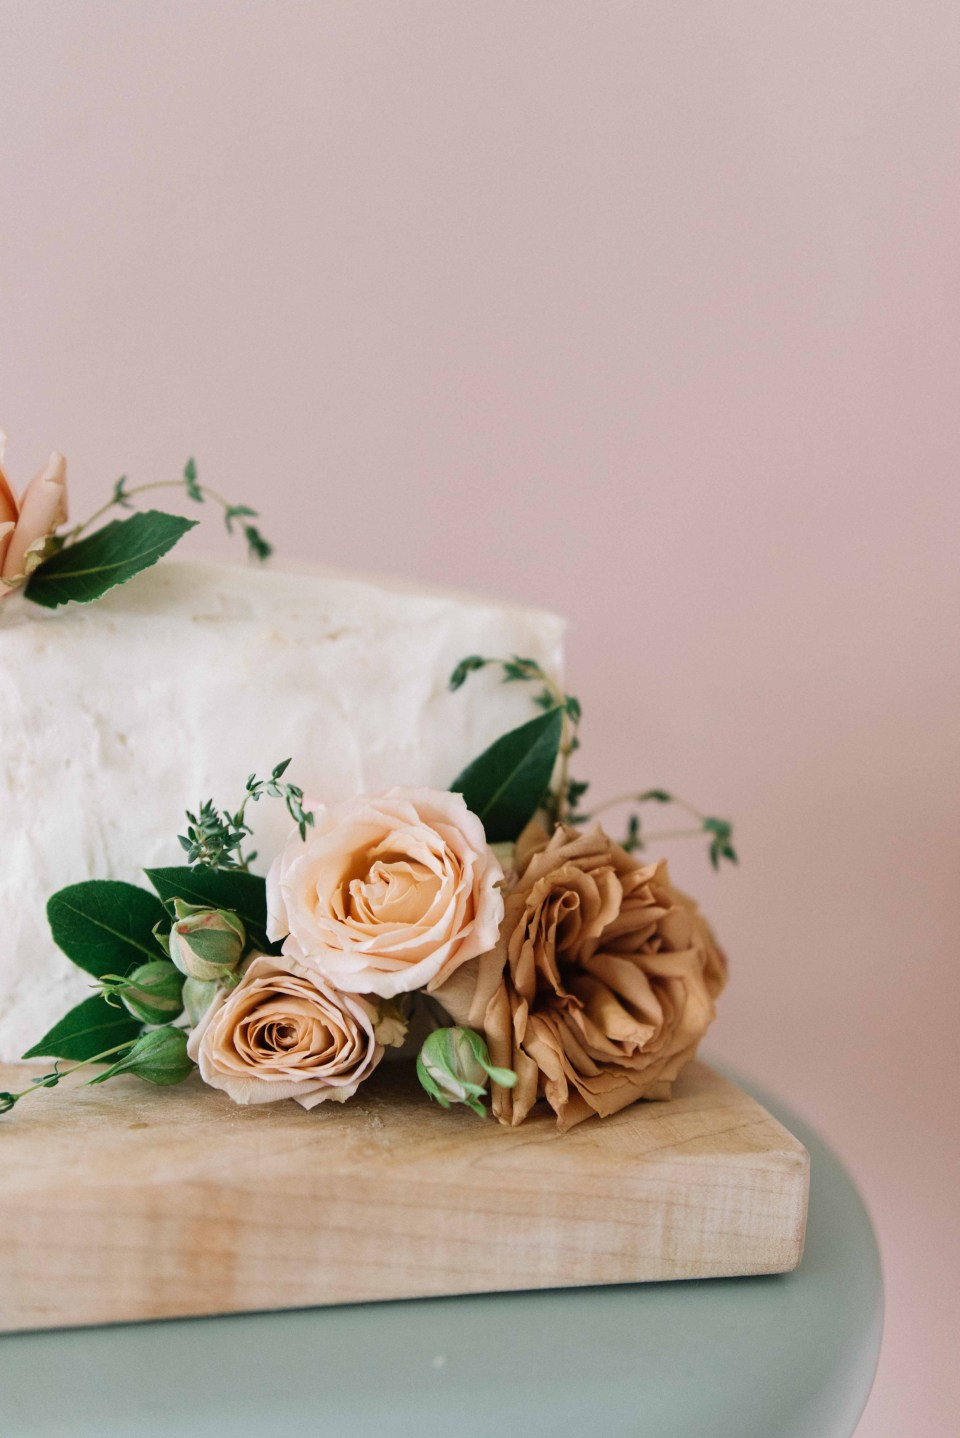 How to Safely Put Fresh Flowers On Cakes